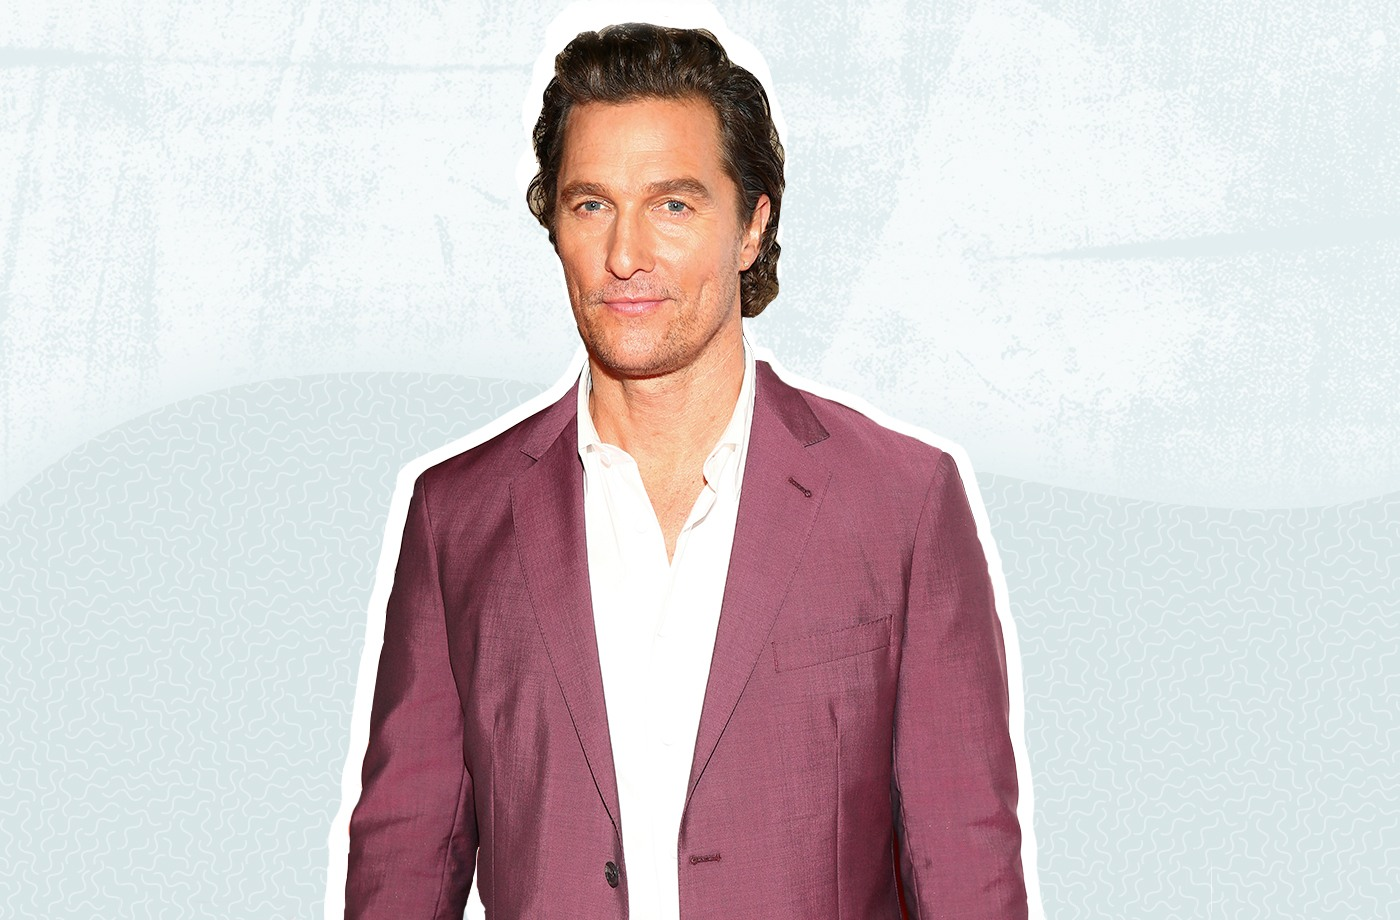 Try this bedtime story for adults from Matthew McConaughey ...